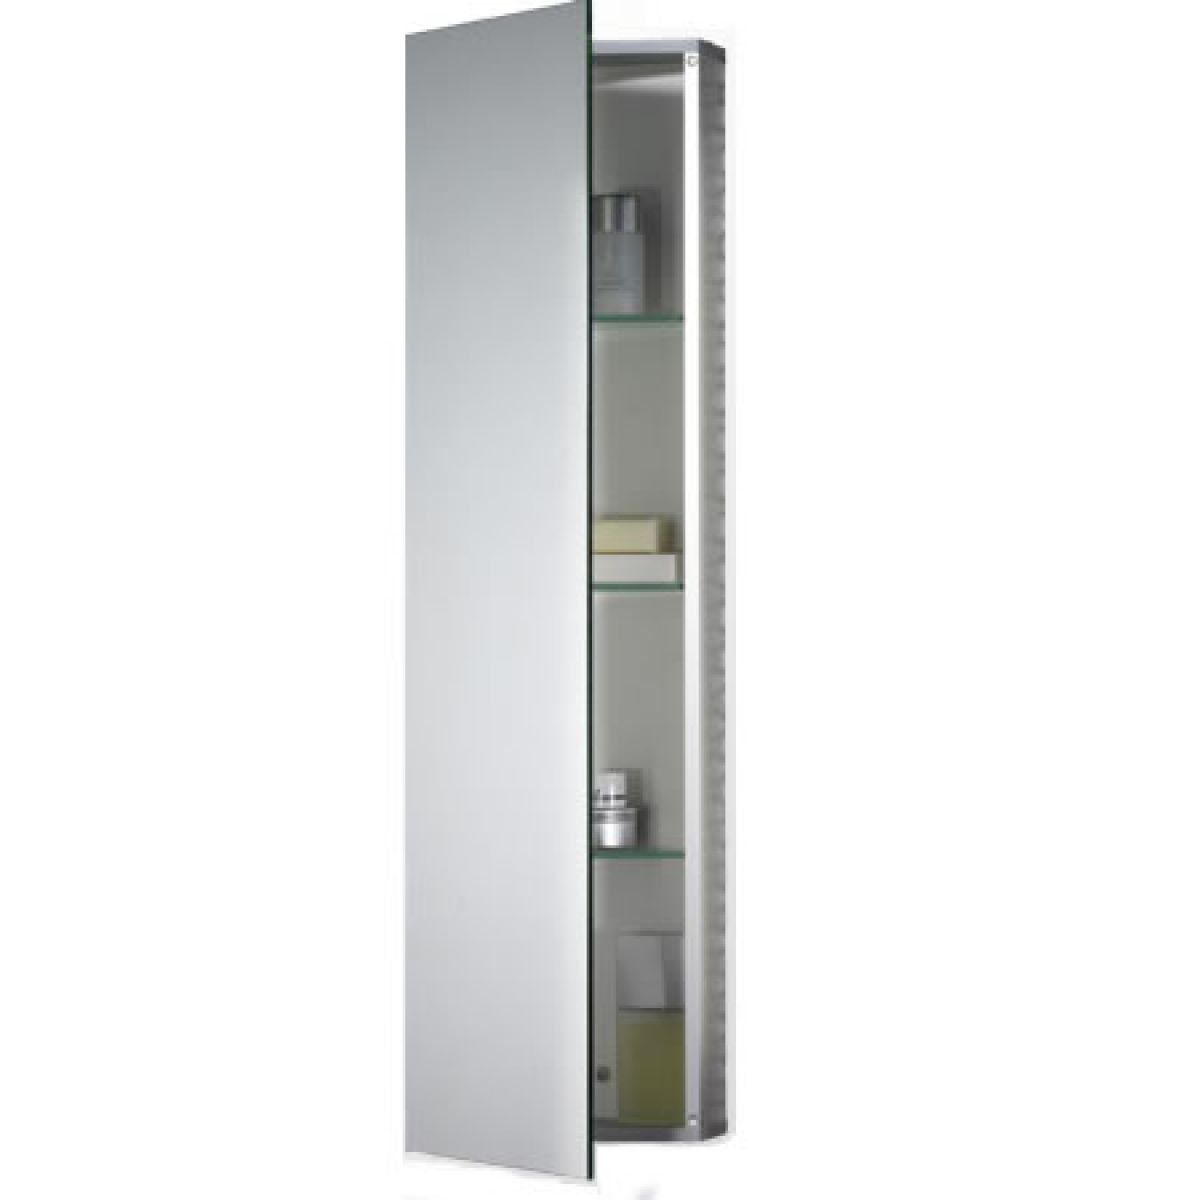 Exceptional 25 Cm Wide Bathroom Cabinet Part - 6: Schneider Classicline Side Cabinet